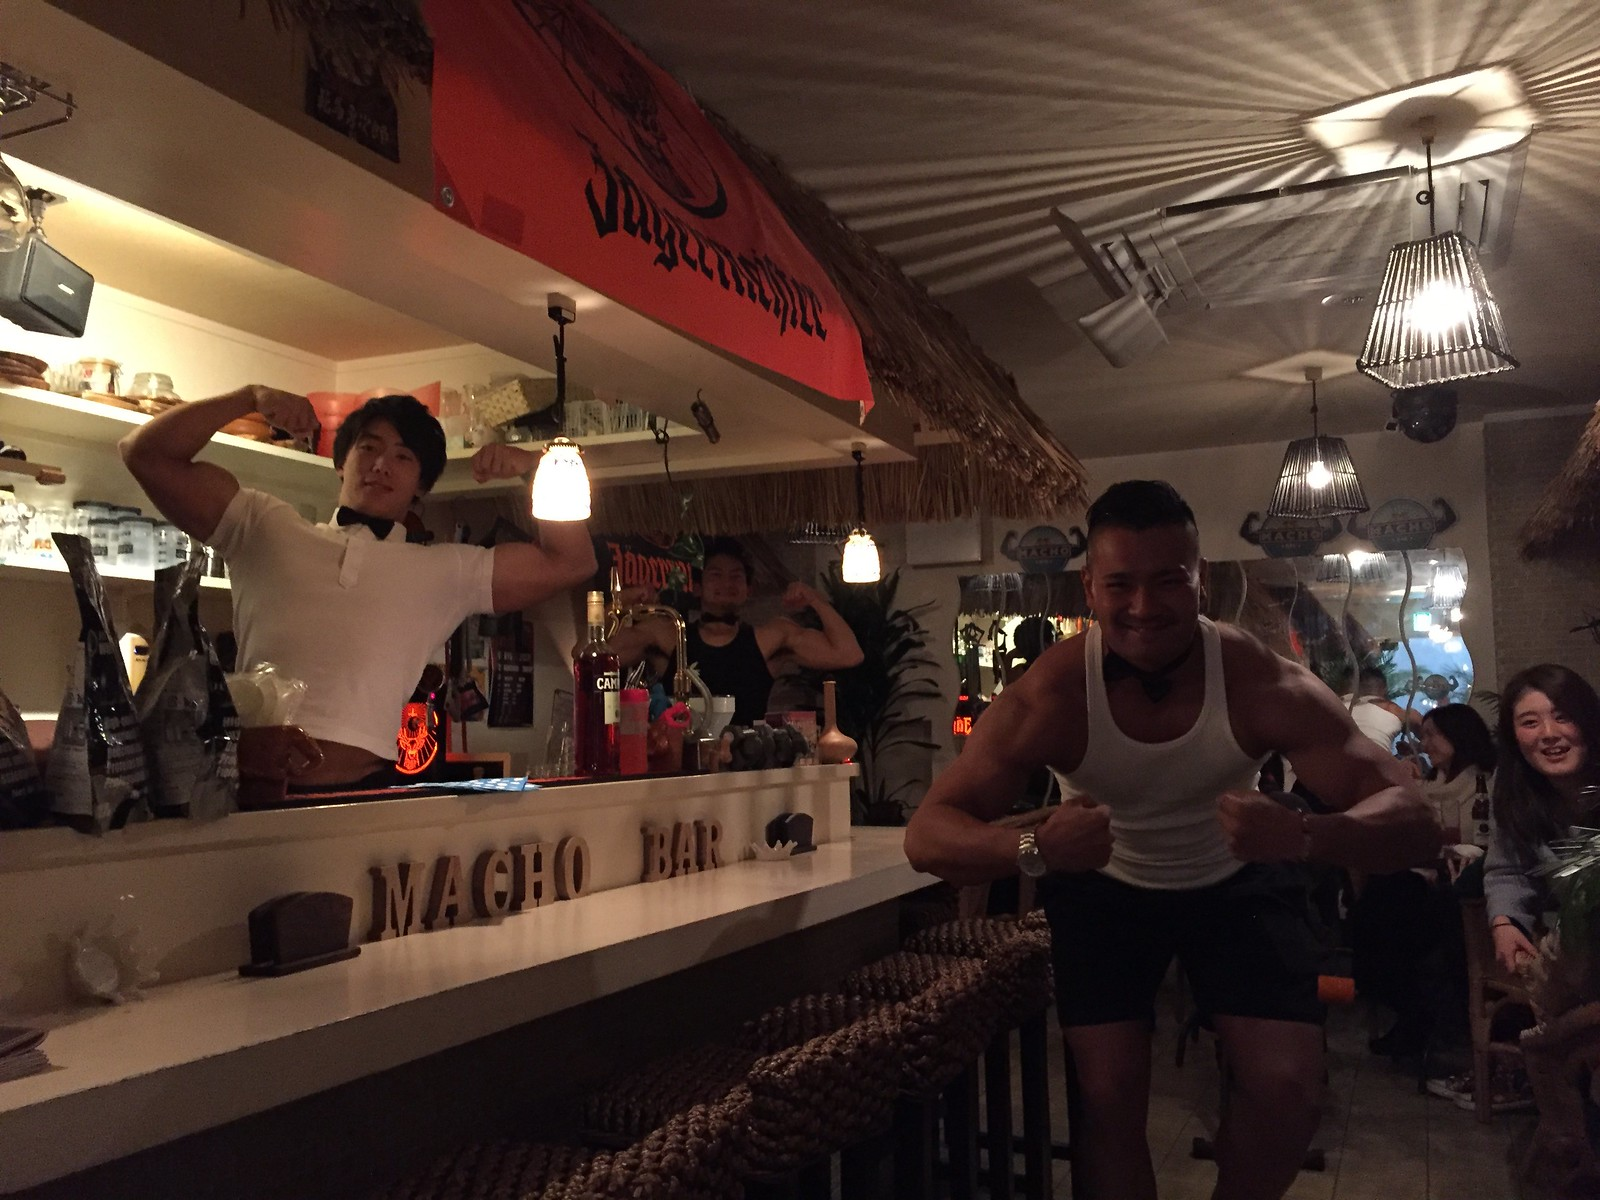 31. Macho Bar